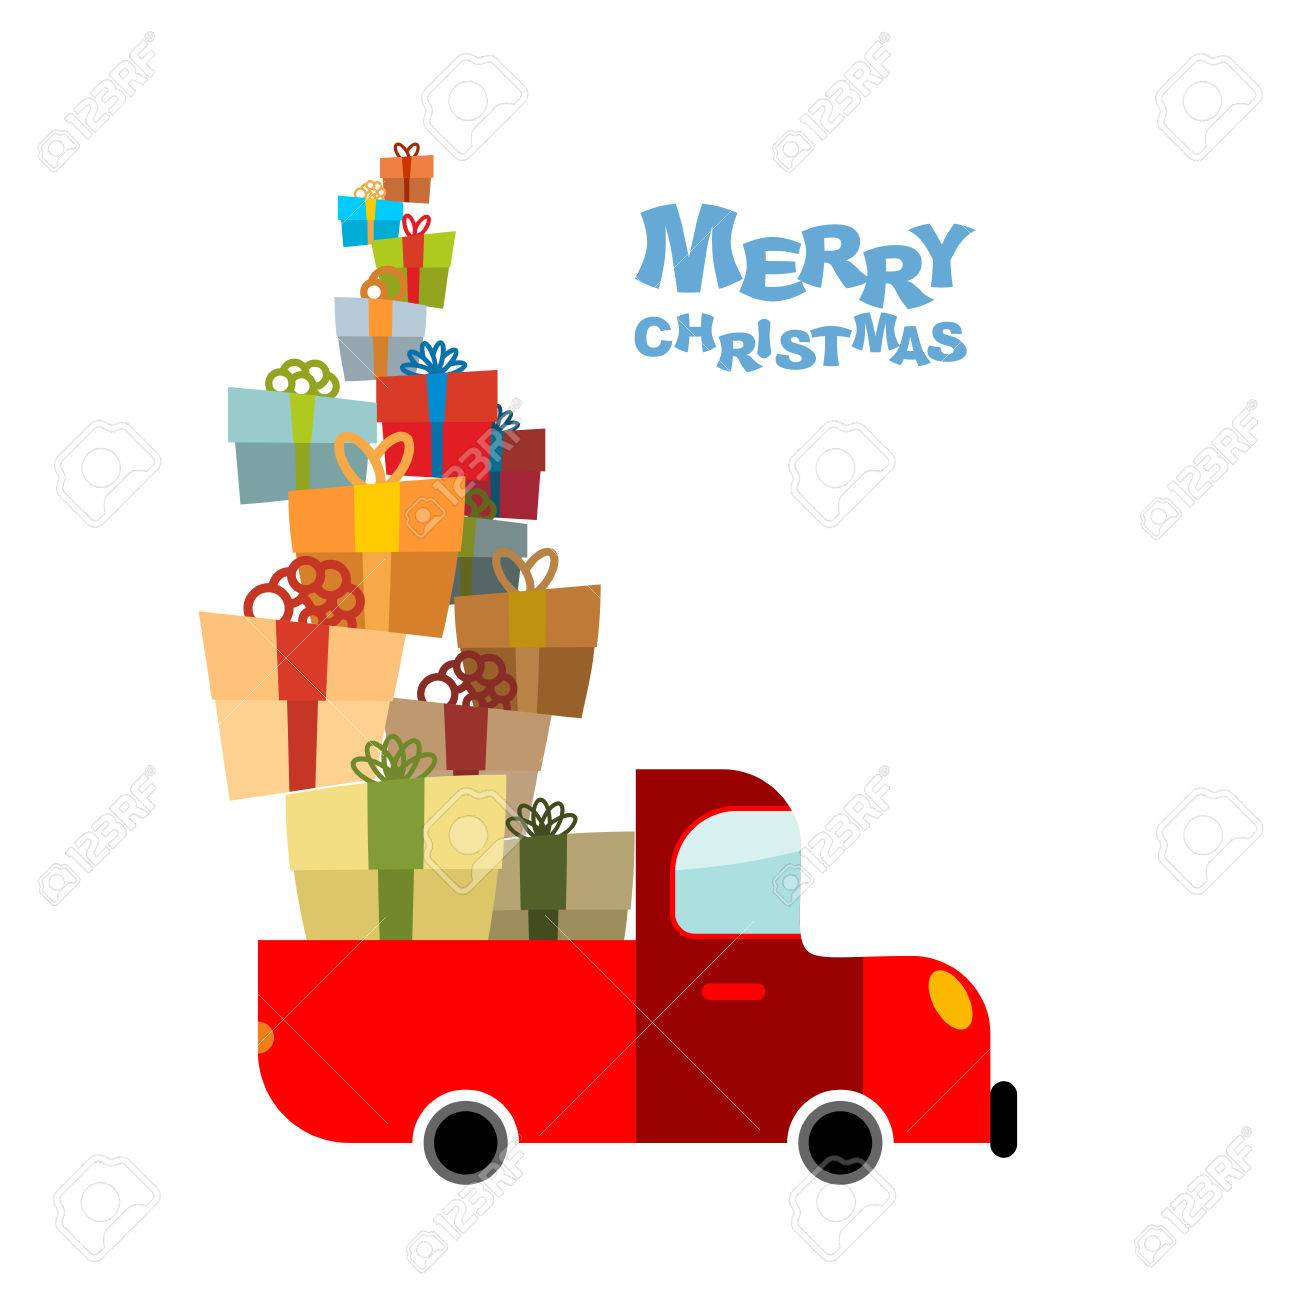 Merry Christmas Car And Lots Of Gift Box Truck Bunch Of Holiday